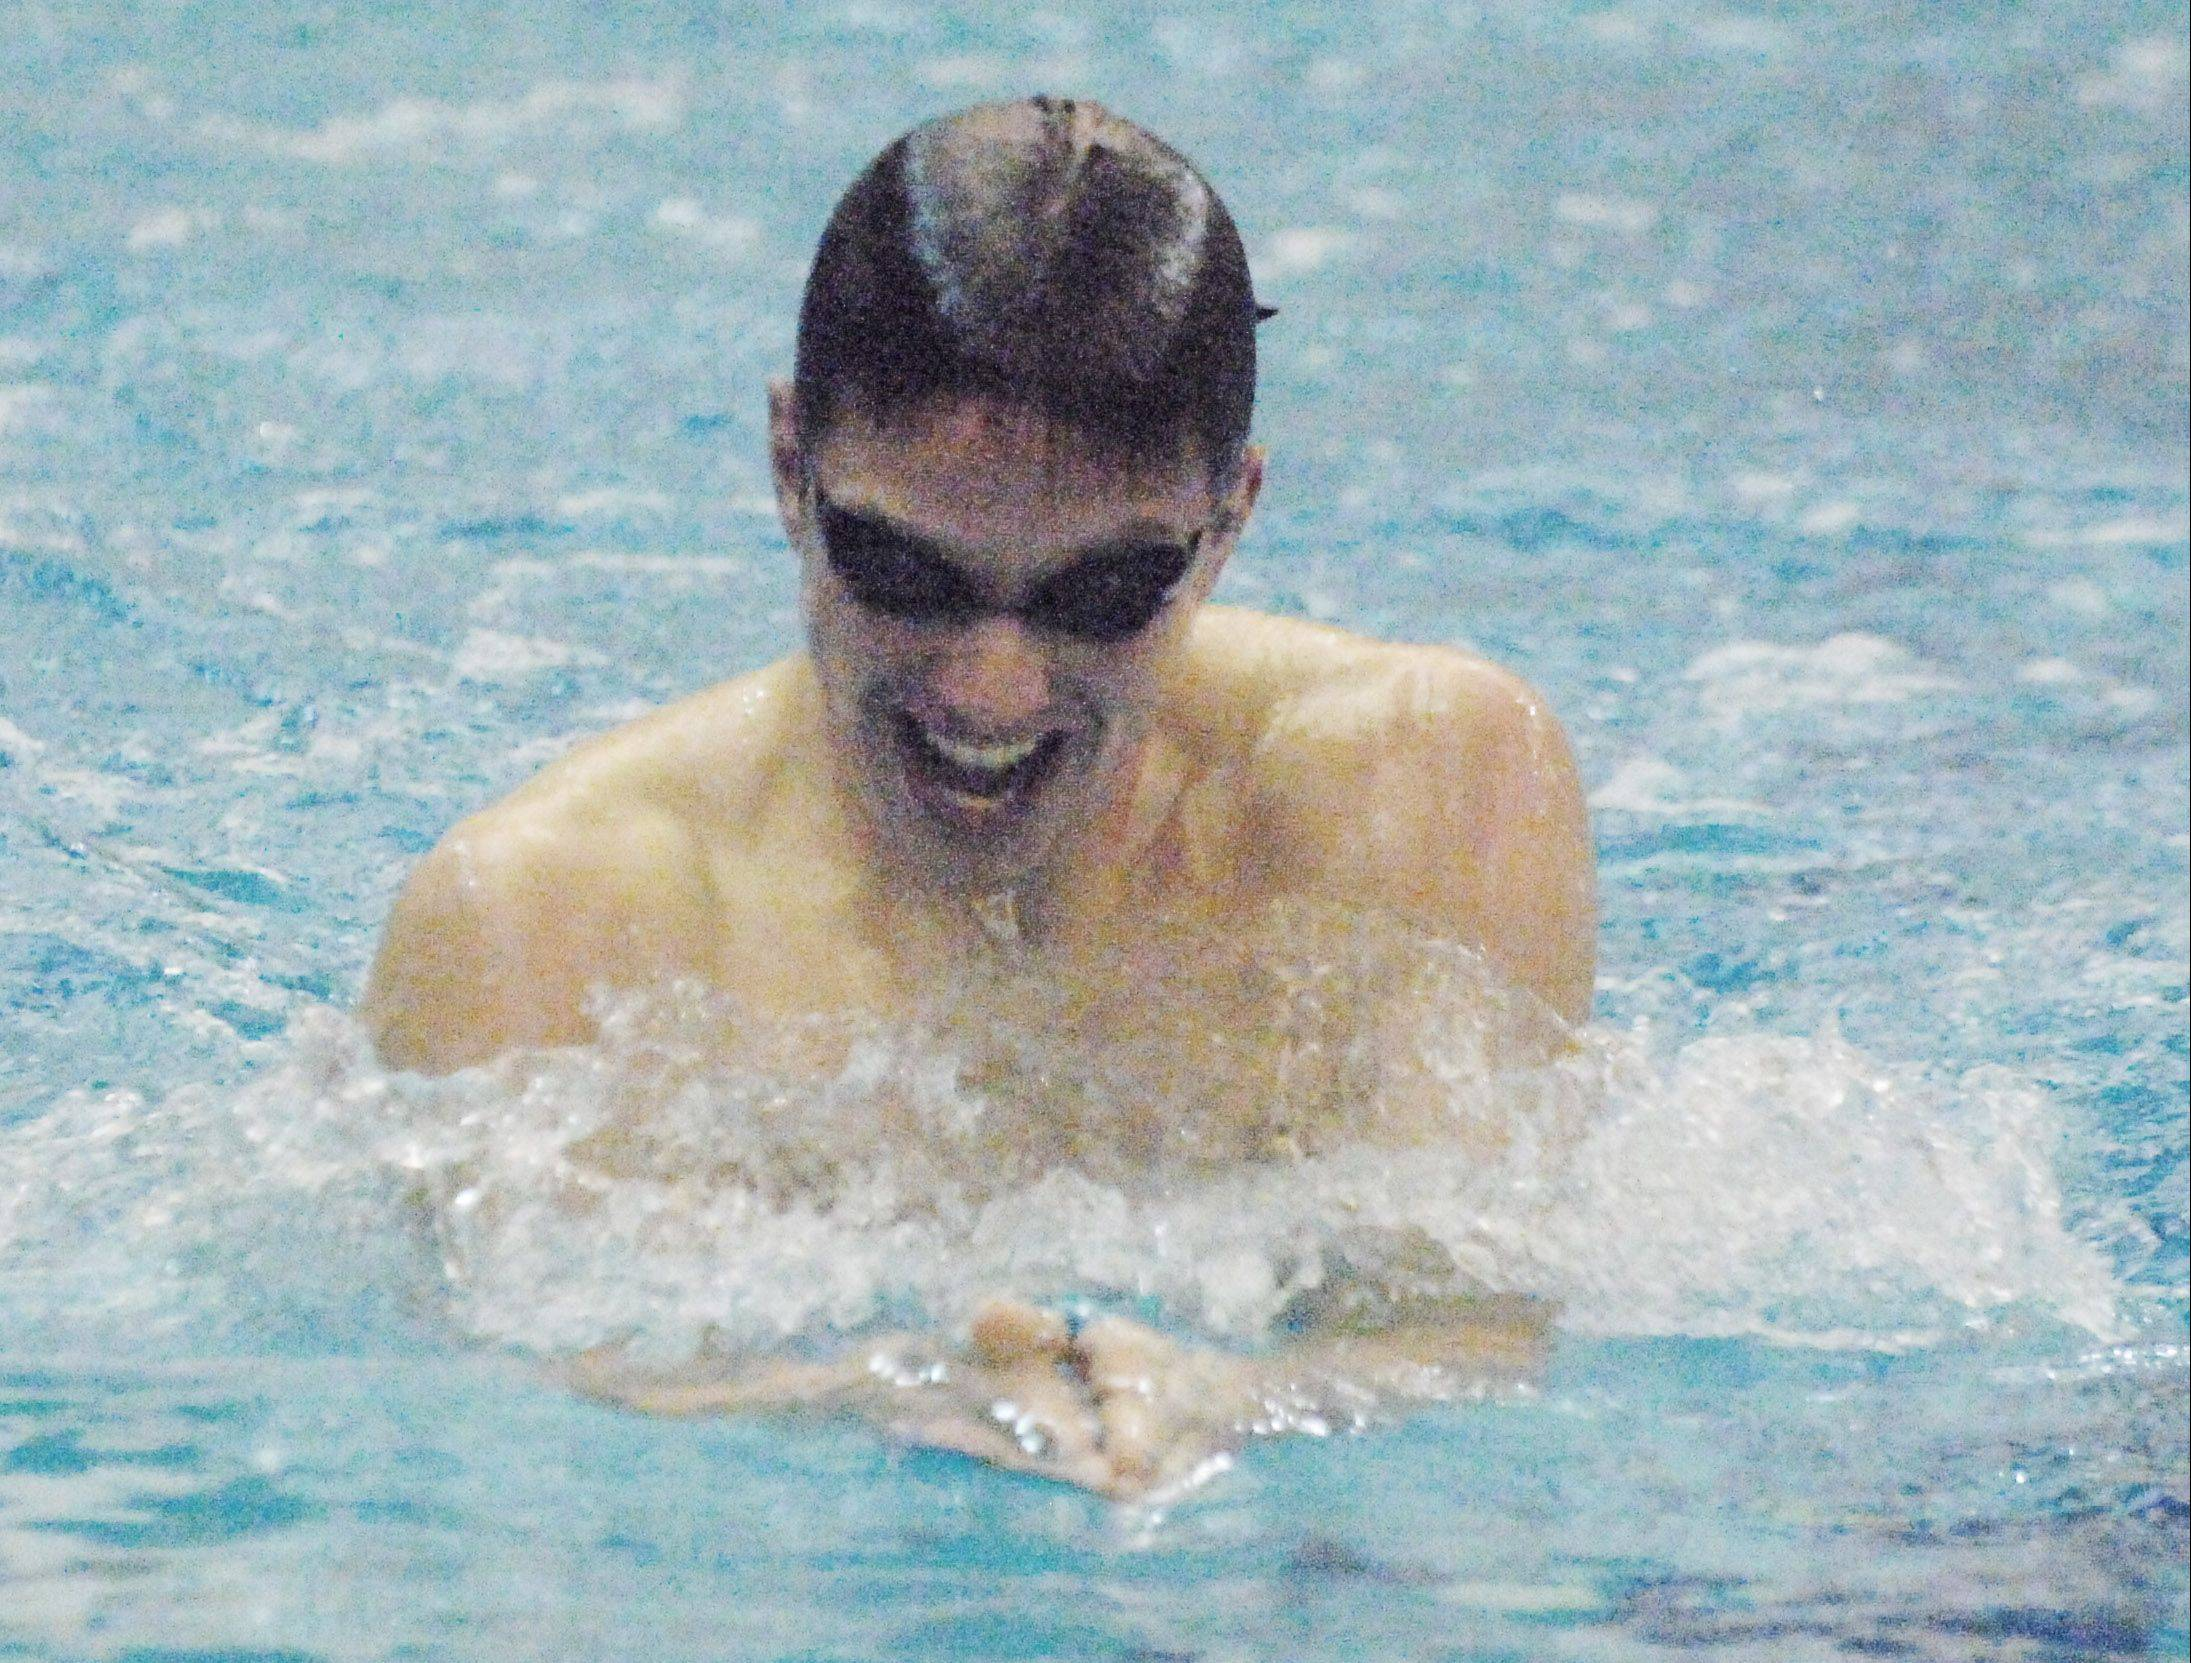 TJ Bindseil of St. Charles East swims the 200 IM during the Neuqua Valley boys swimming invitational Saturday.